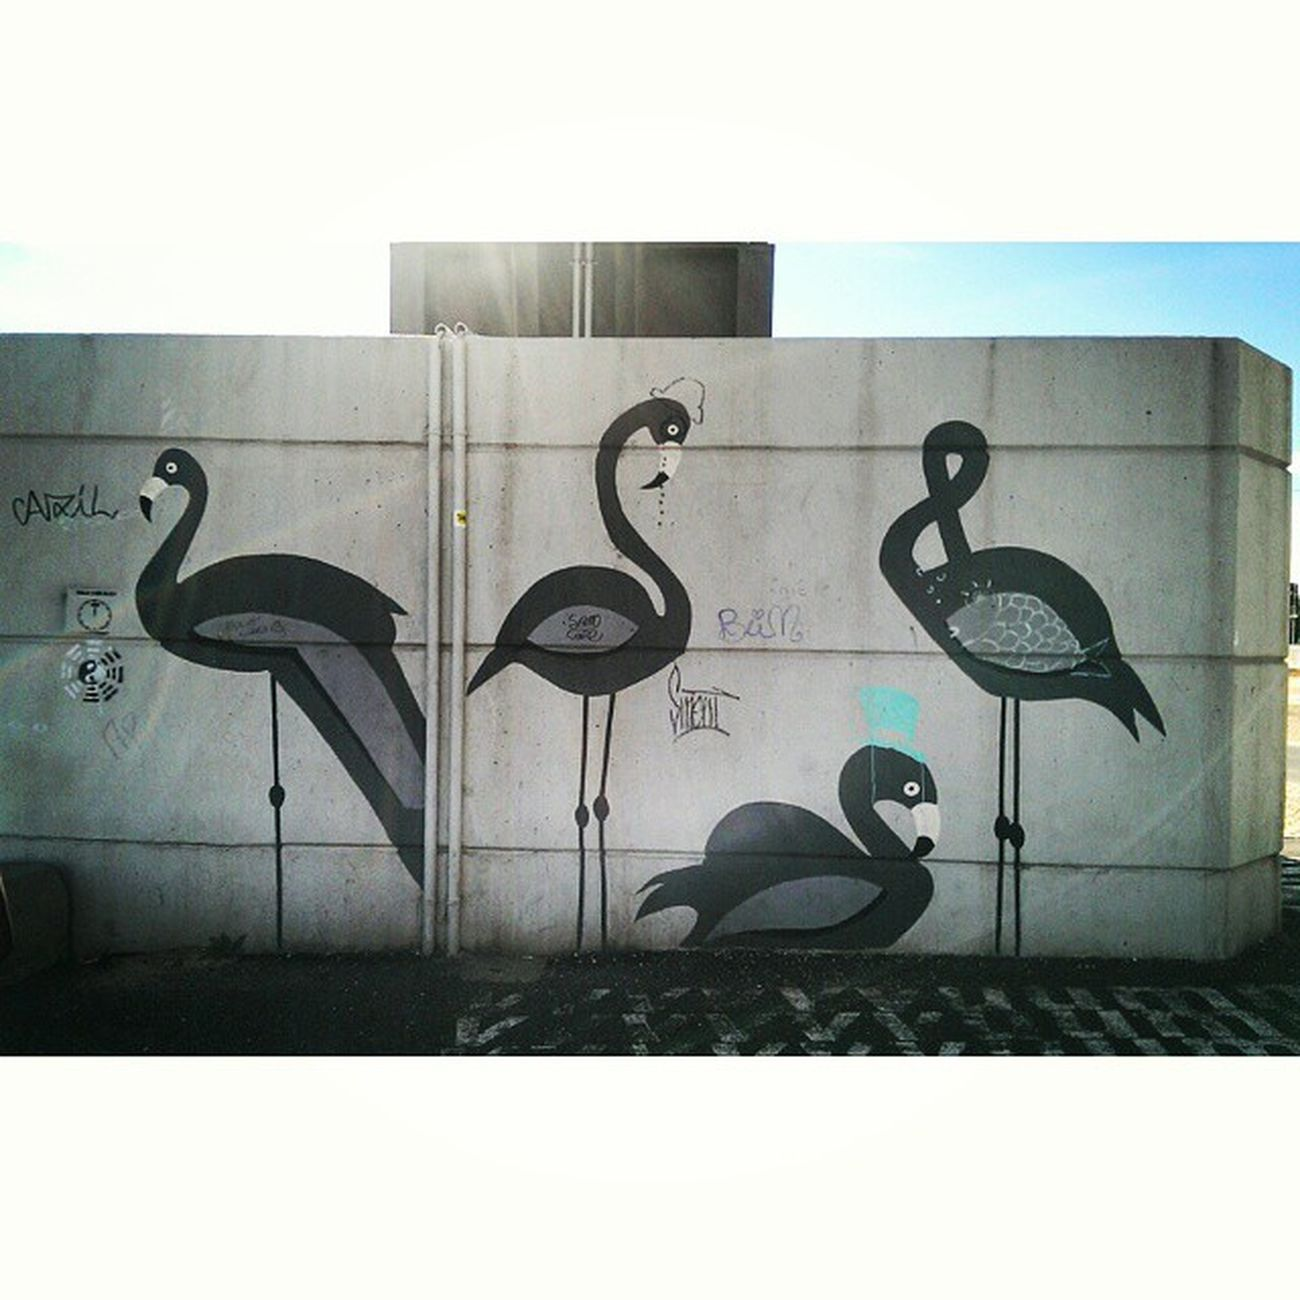 Little flamingos in Lisboa ⚓ Portugal Lisbon Lisboa Holidays SunnyDay Tage withthebff touristes